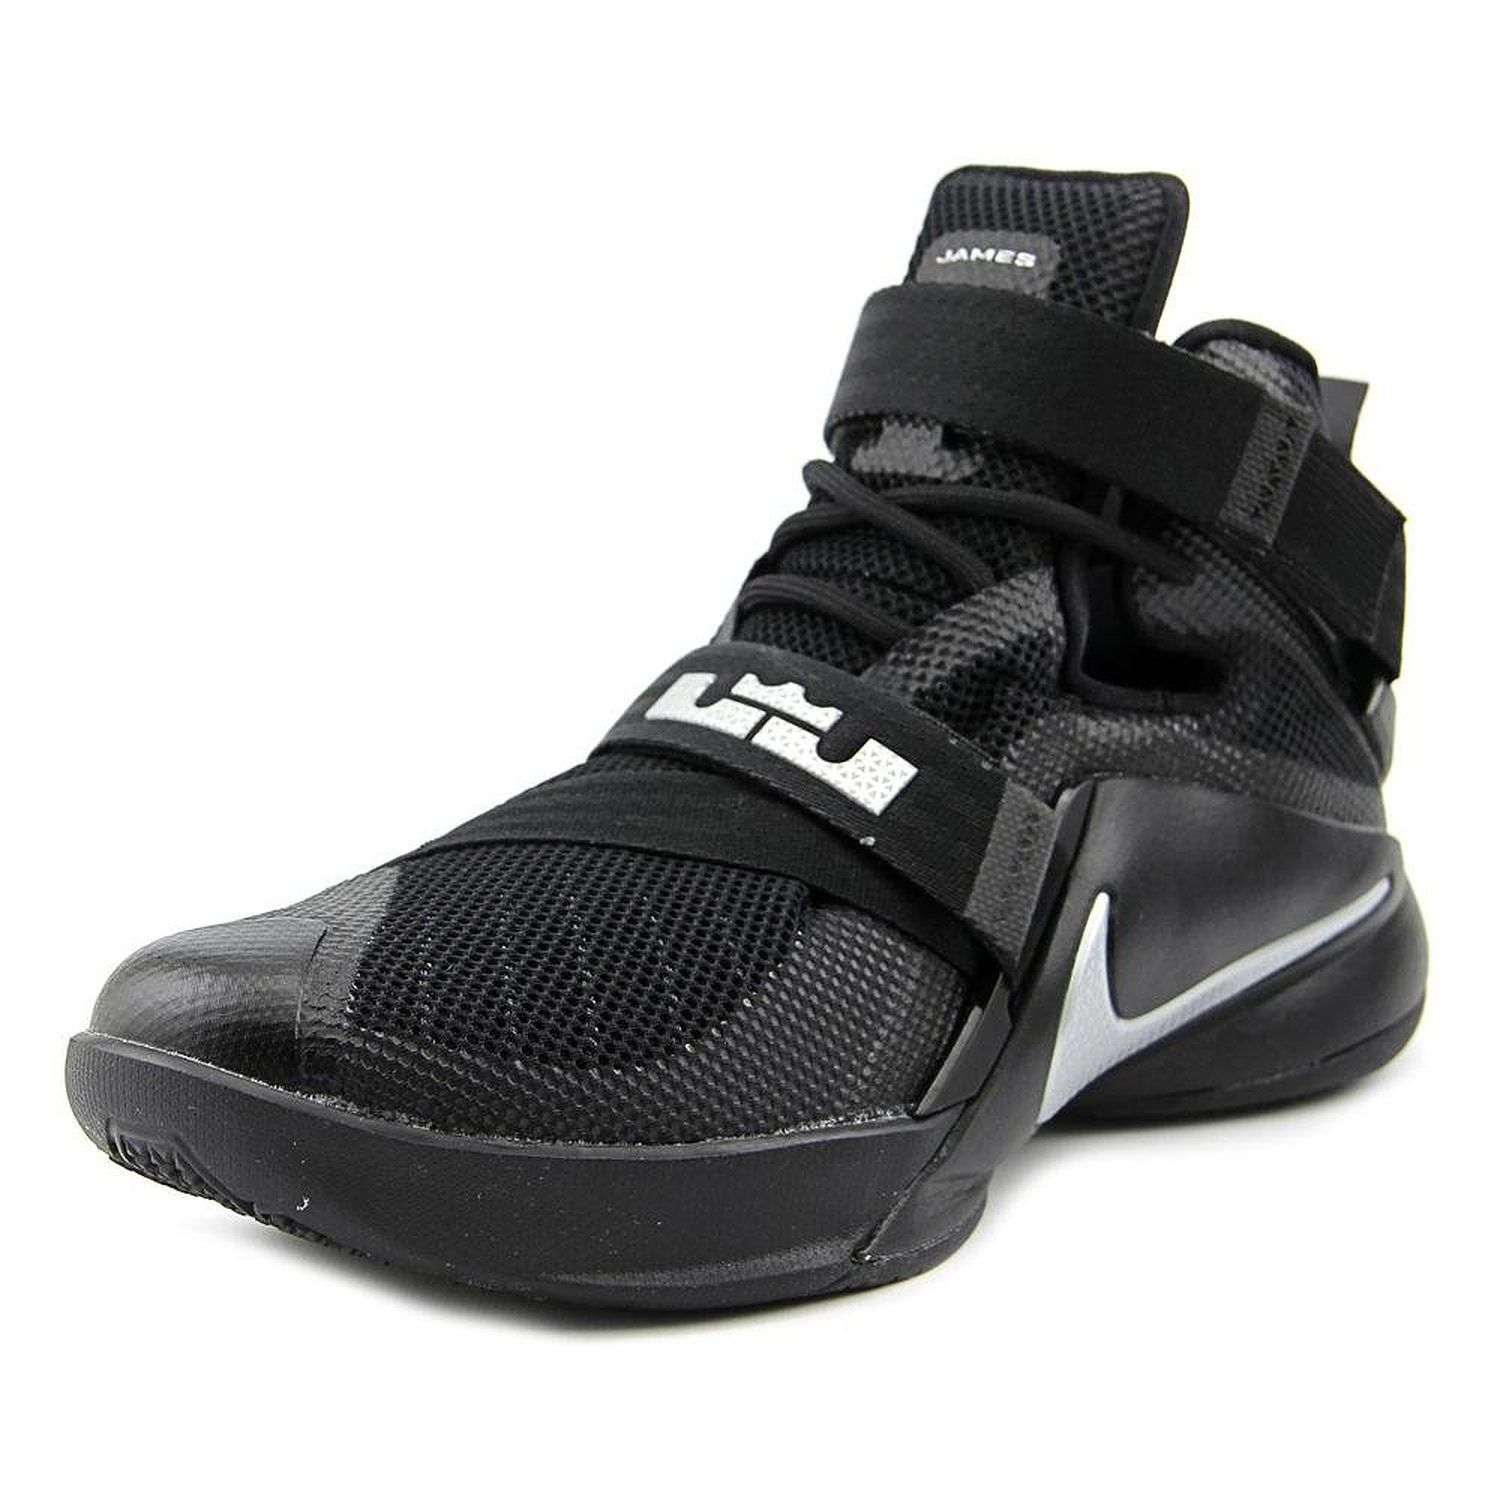 purchase cheap 577a0 31da6 Best Ankle SUPPORT Basketball Shoes  LeBron Soldier IX